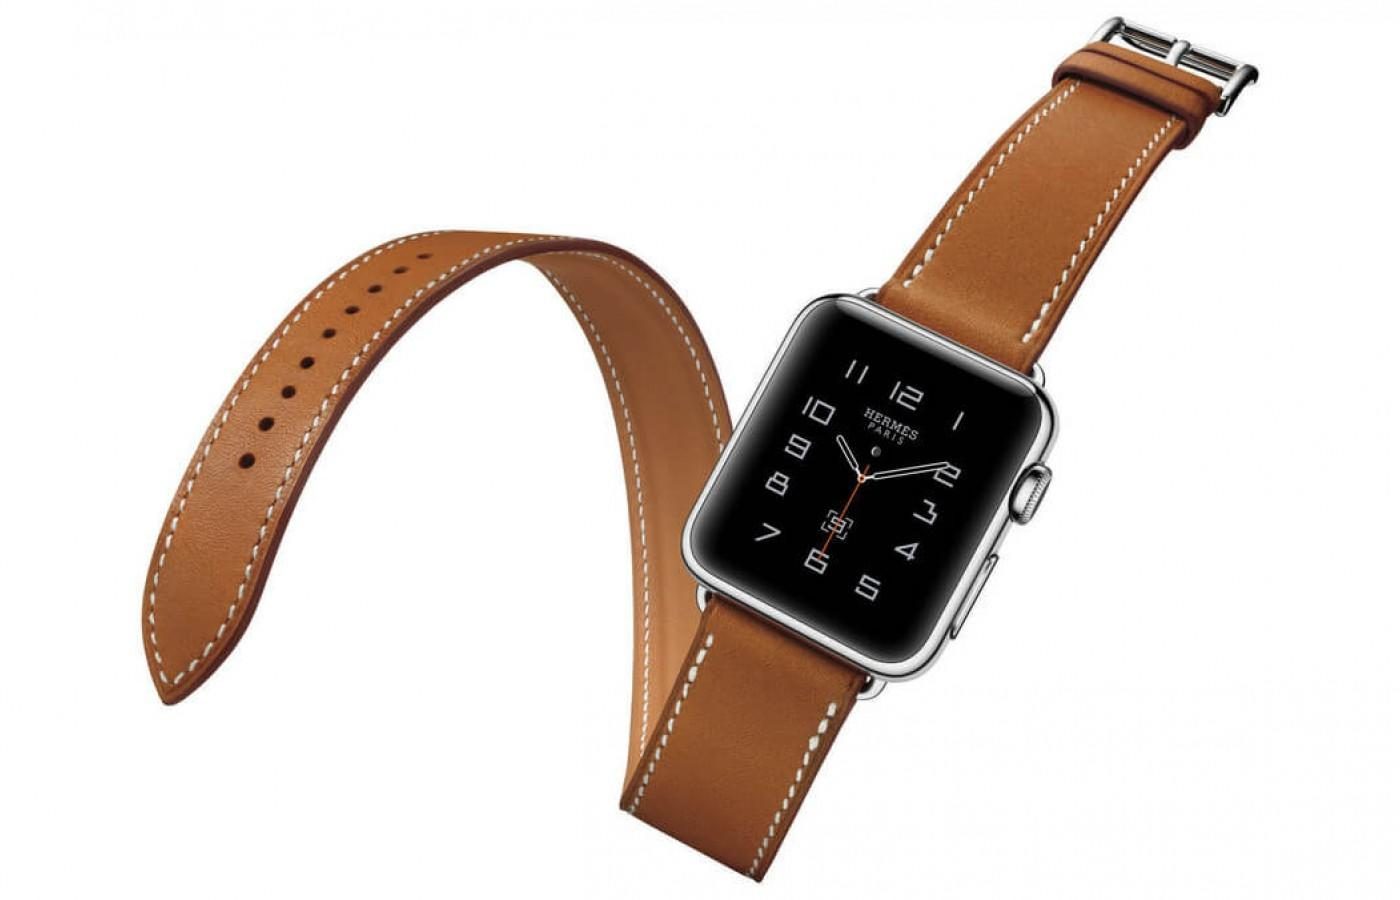 Apple Watch Hermes is classic yet new